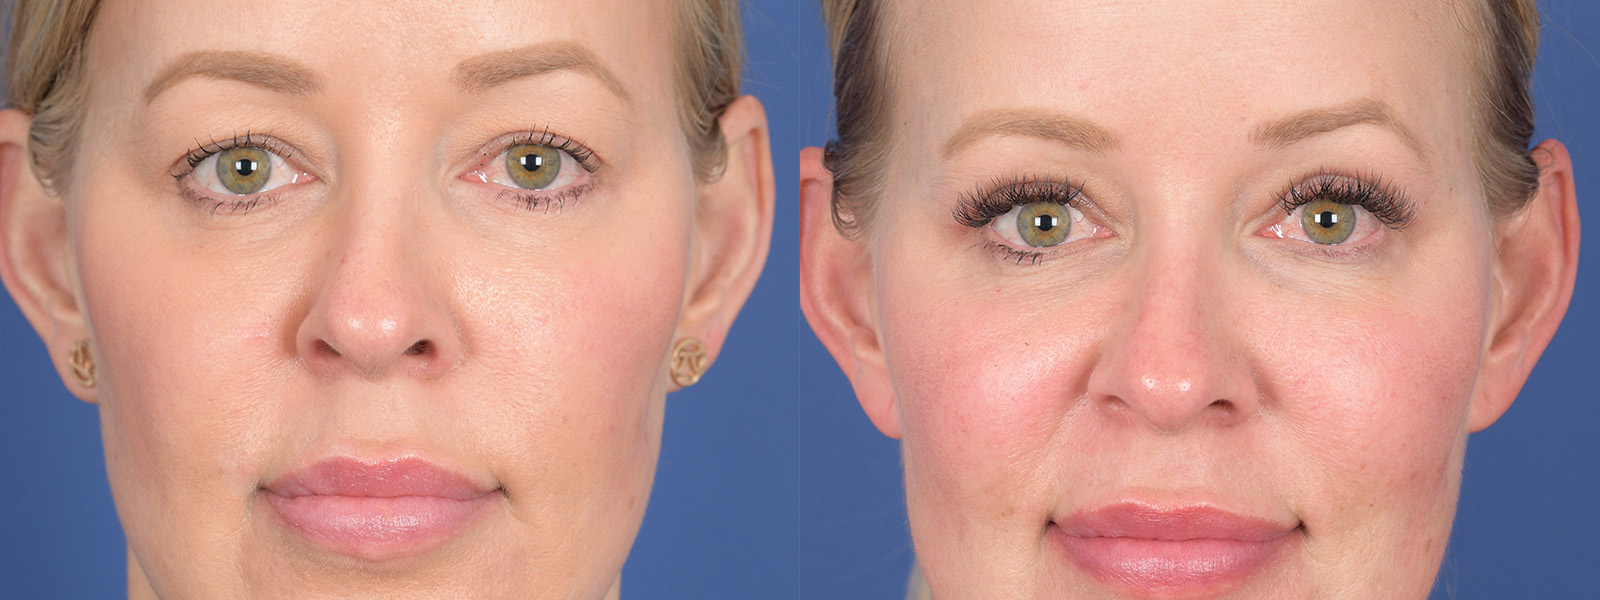 Blepharoplasty Before and After | Weber Facial Plastic Surgery